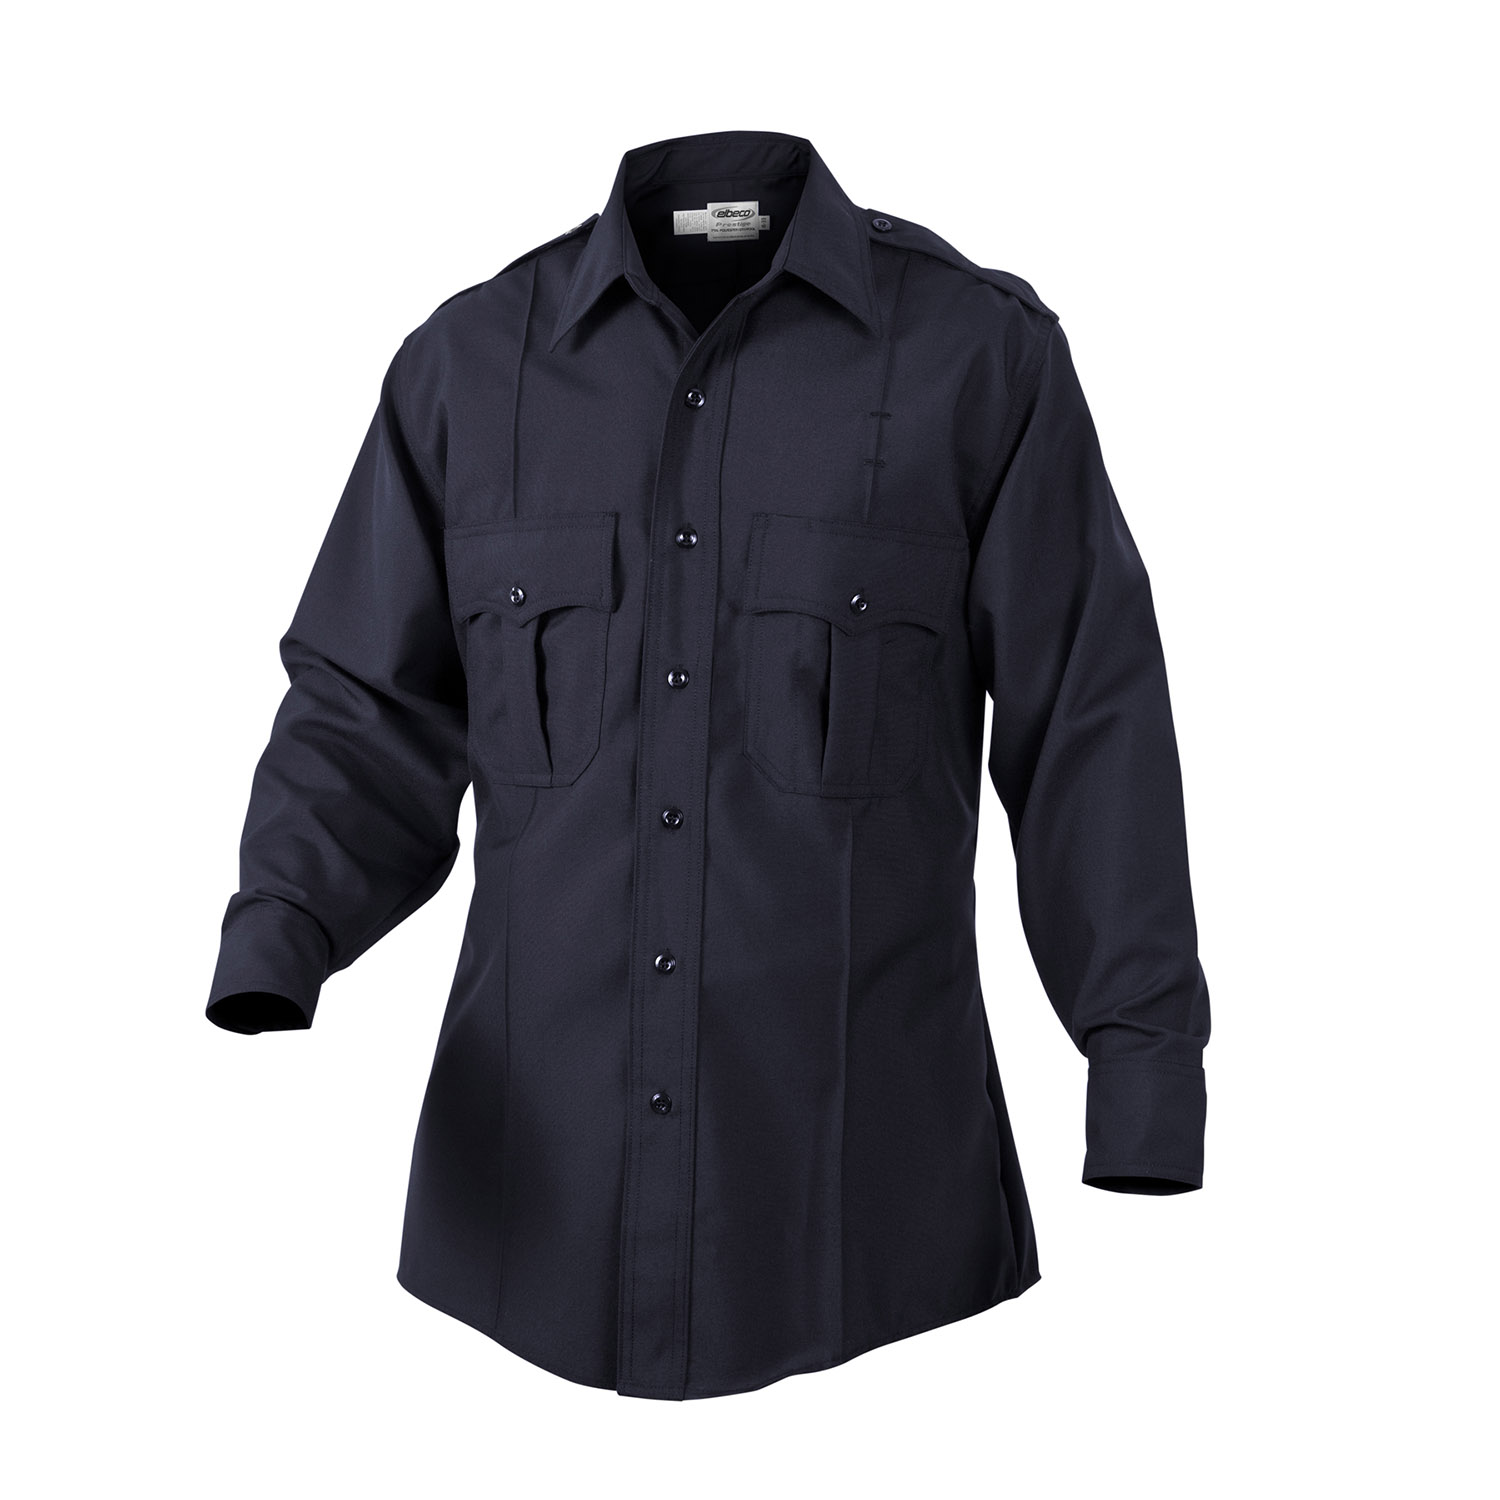 Elbeco Distinction West Coast Long Sleeve Shirt